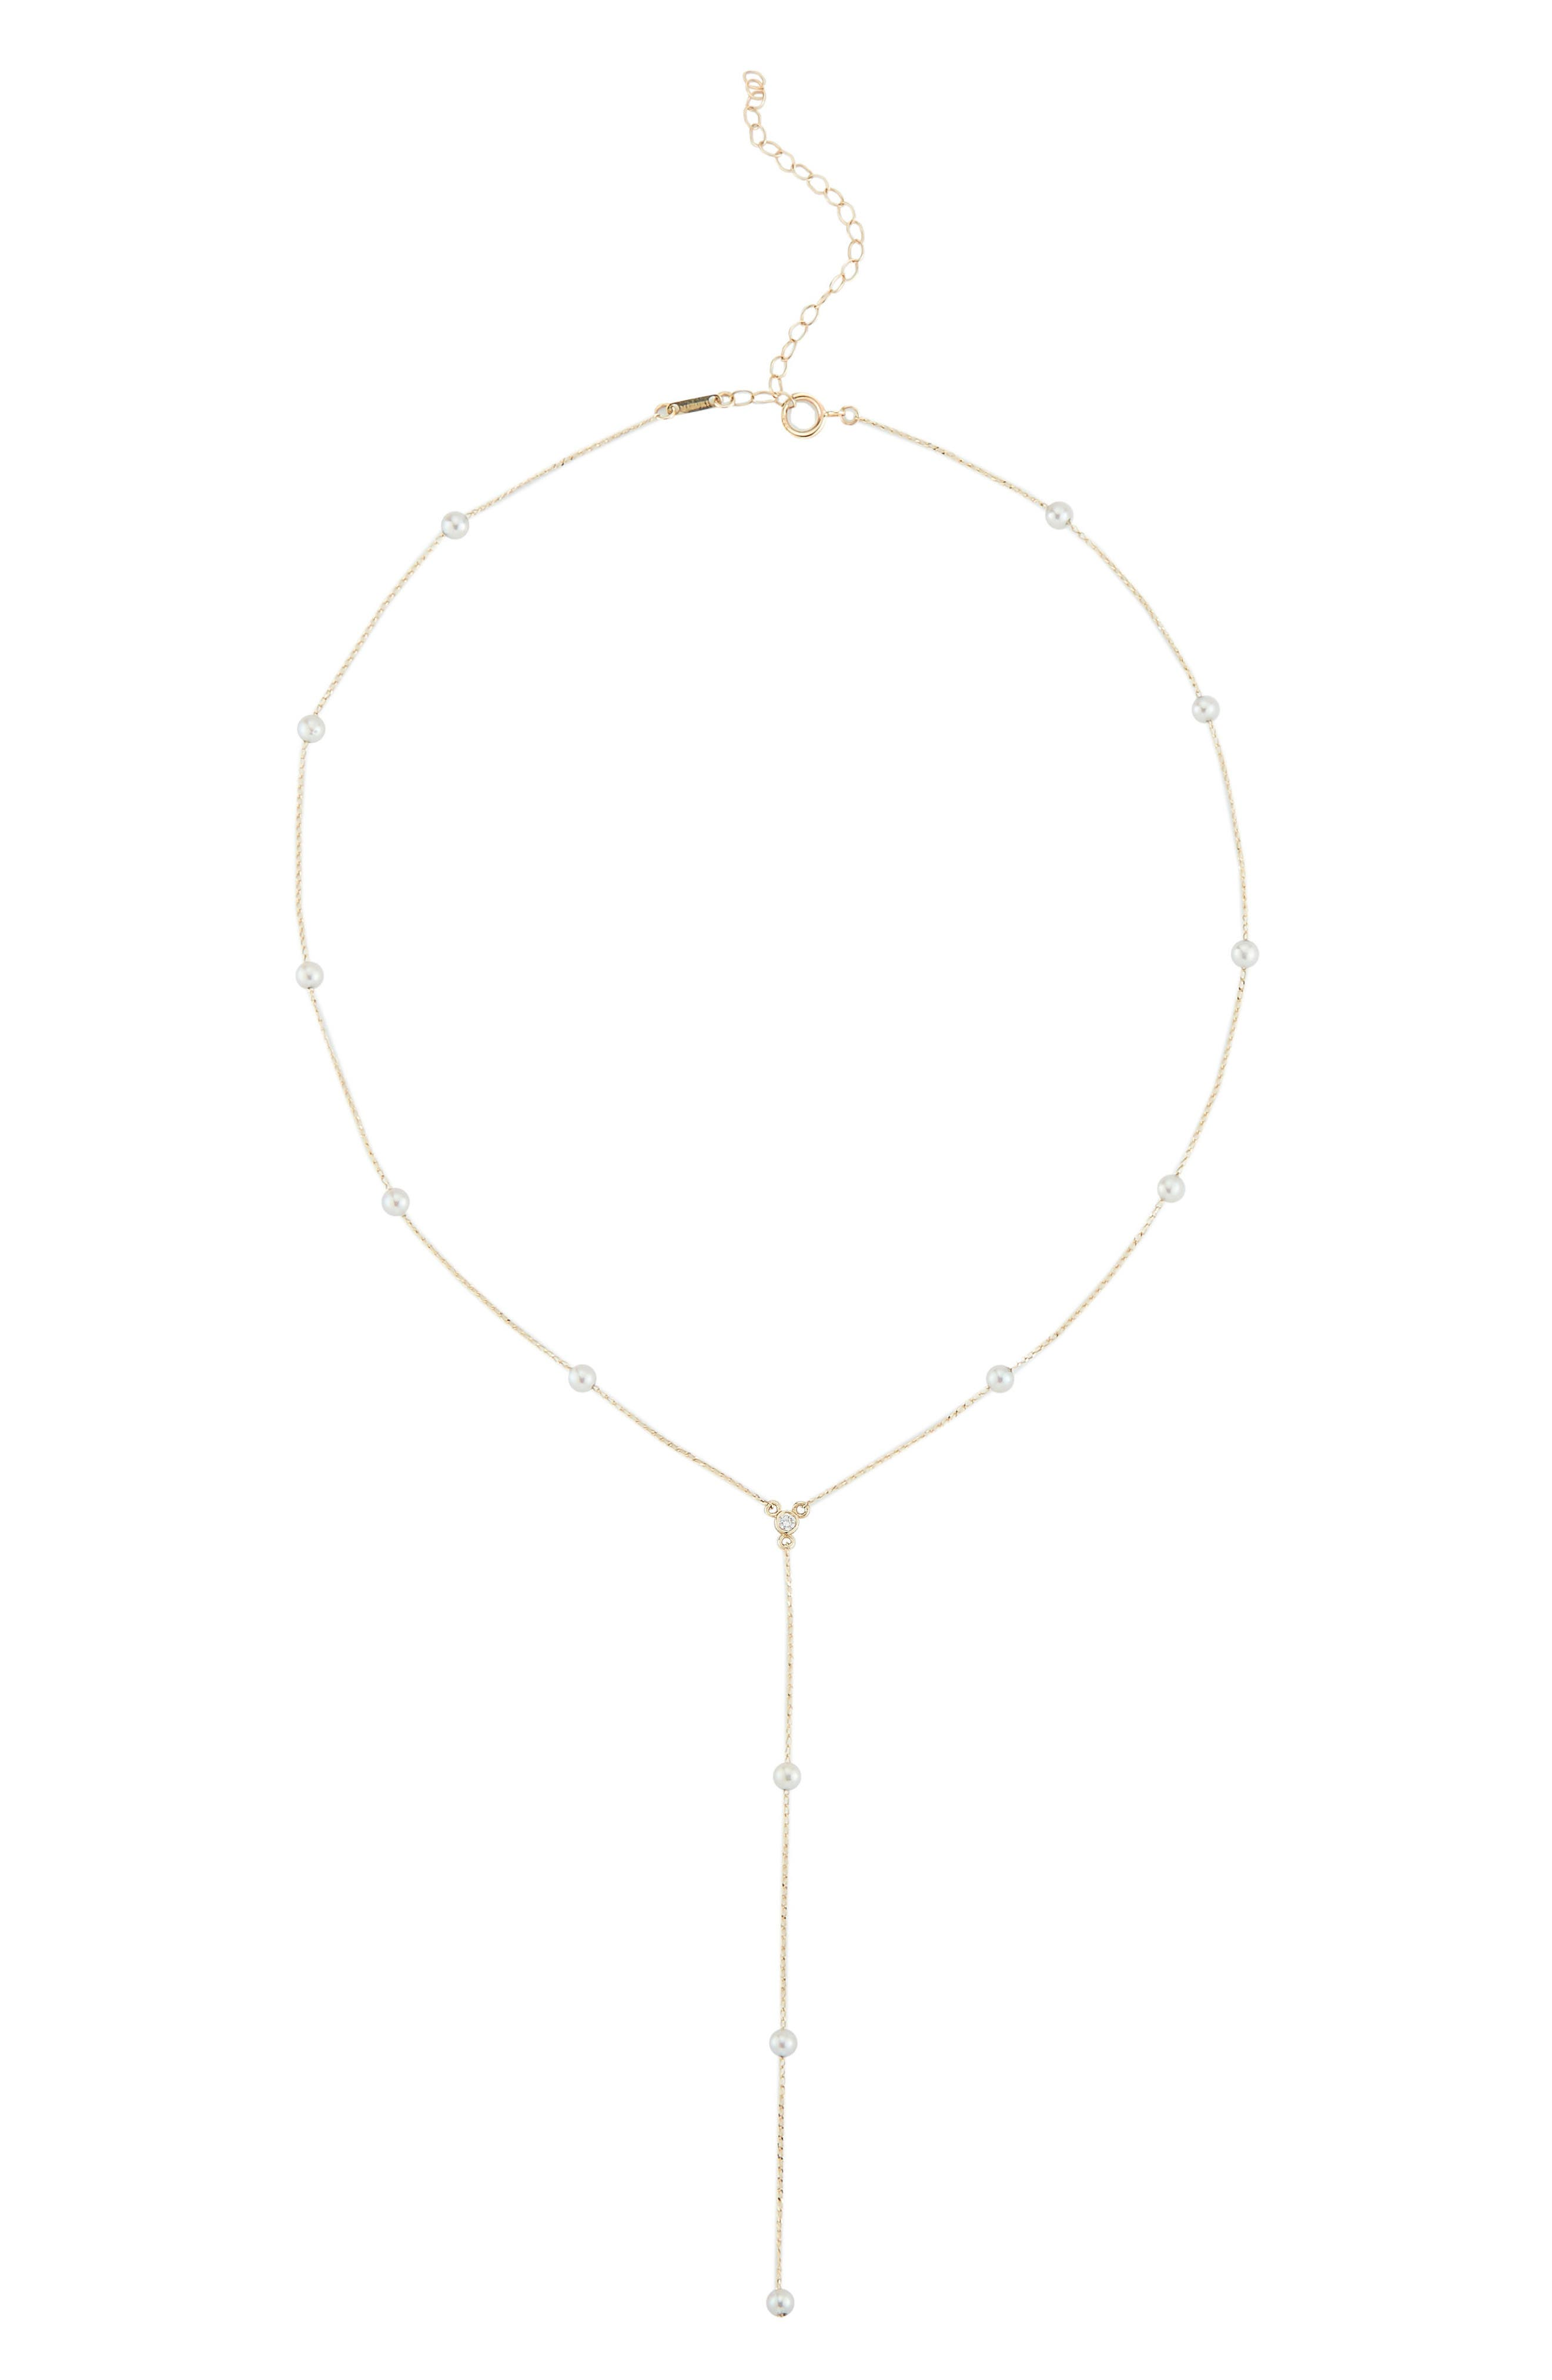 Diamond & Pearl Station Necklace,                             Main thumbnail 1, color,                             YELLOW GOLD/ PEARL